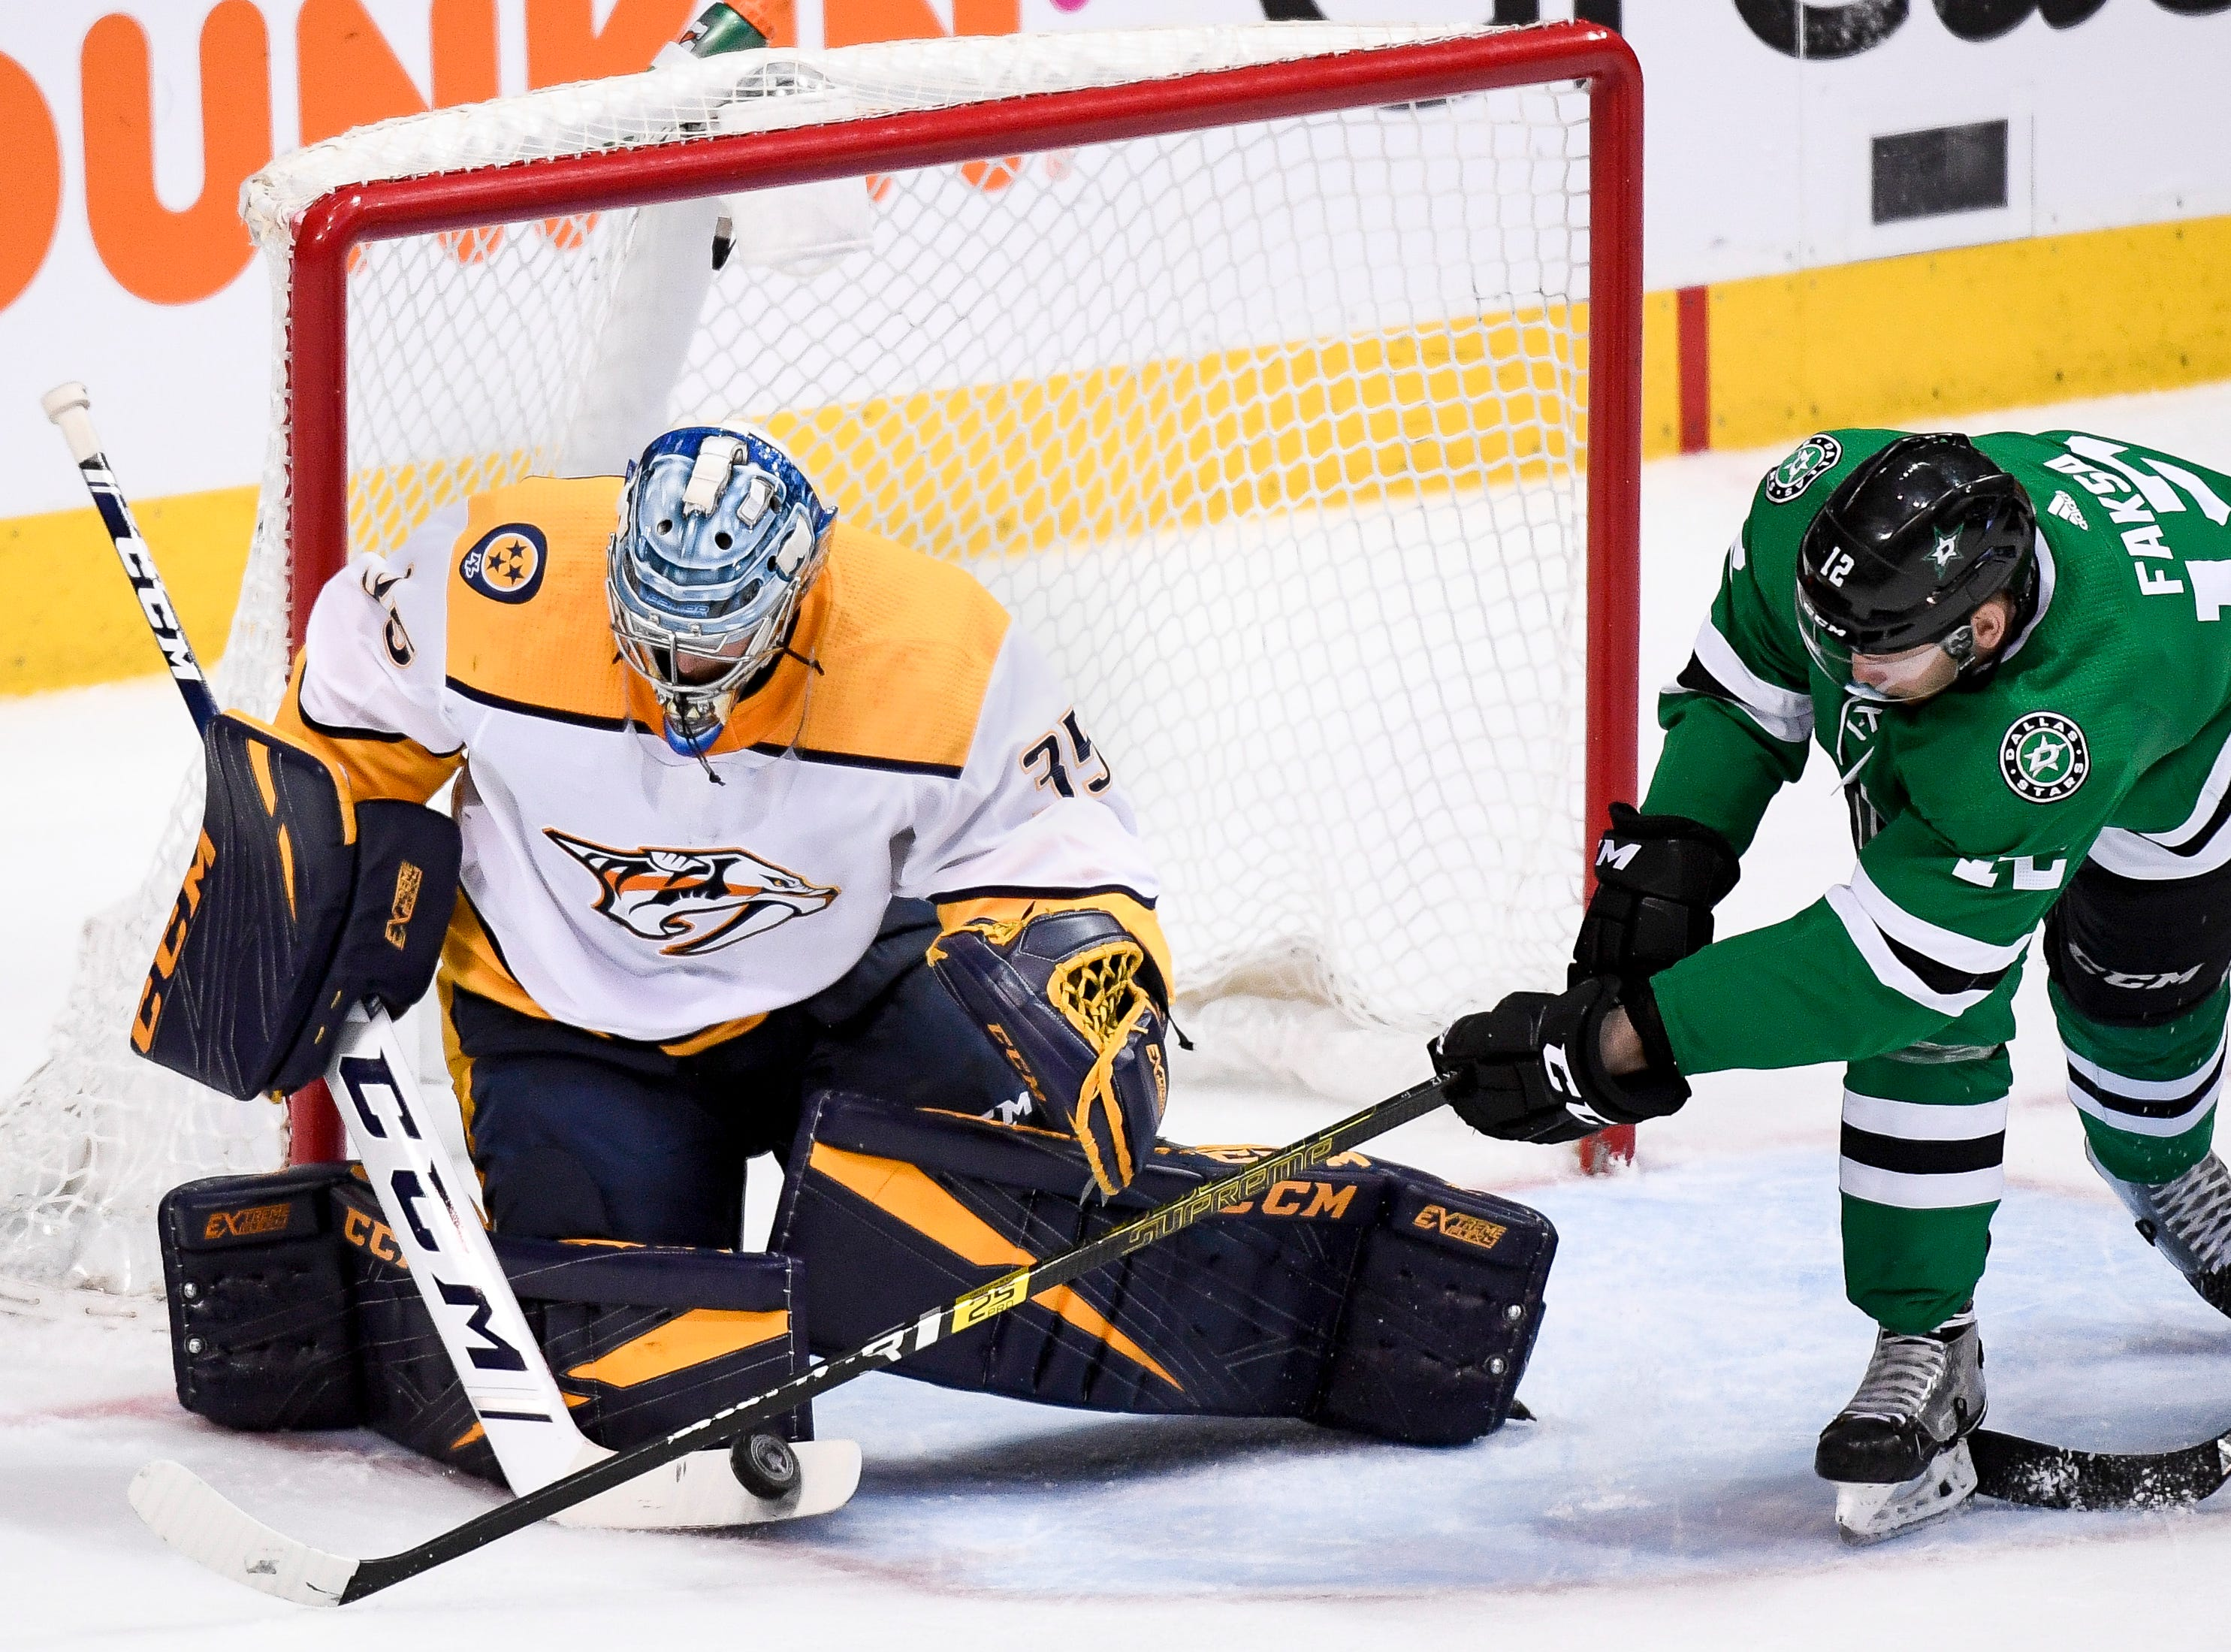 Nashville Predators goaltender Pekka Rinne (35) defends against Dallas Stars center Radek Faksa (12) during the third period of the divisional semifinal game at the American Airlines Center in Dallas, Texas., Monday, April 15, 2019.